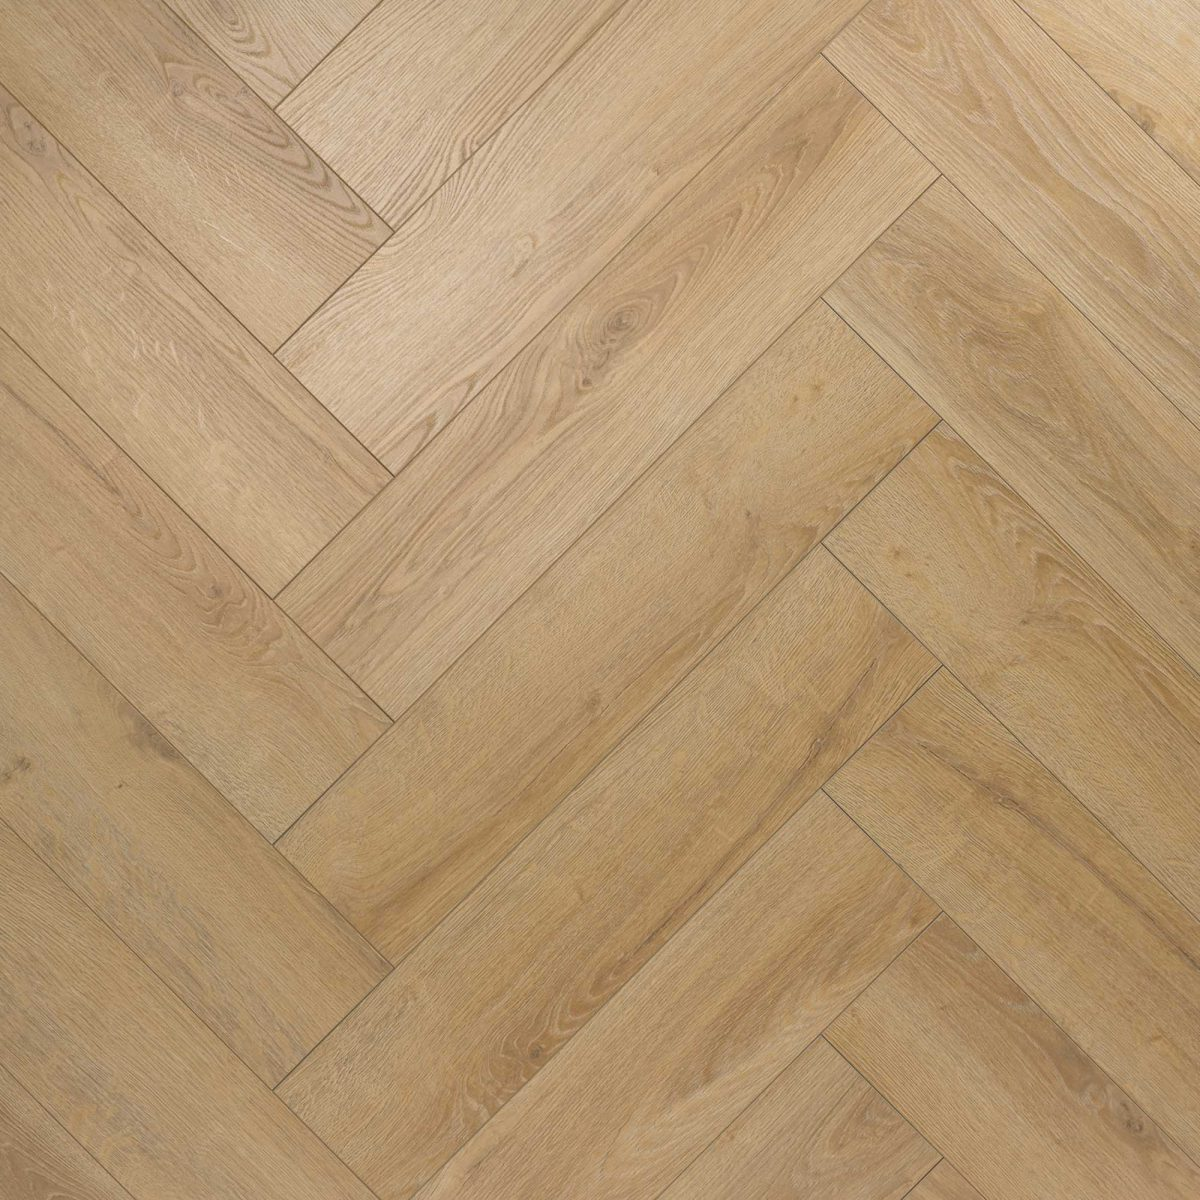 Nature AC6 Herringbone 12mm Shortbread Oak Laminate Flooring